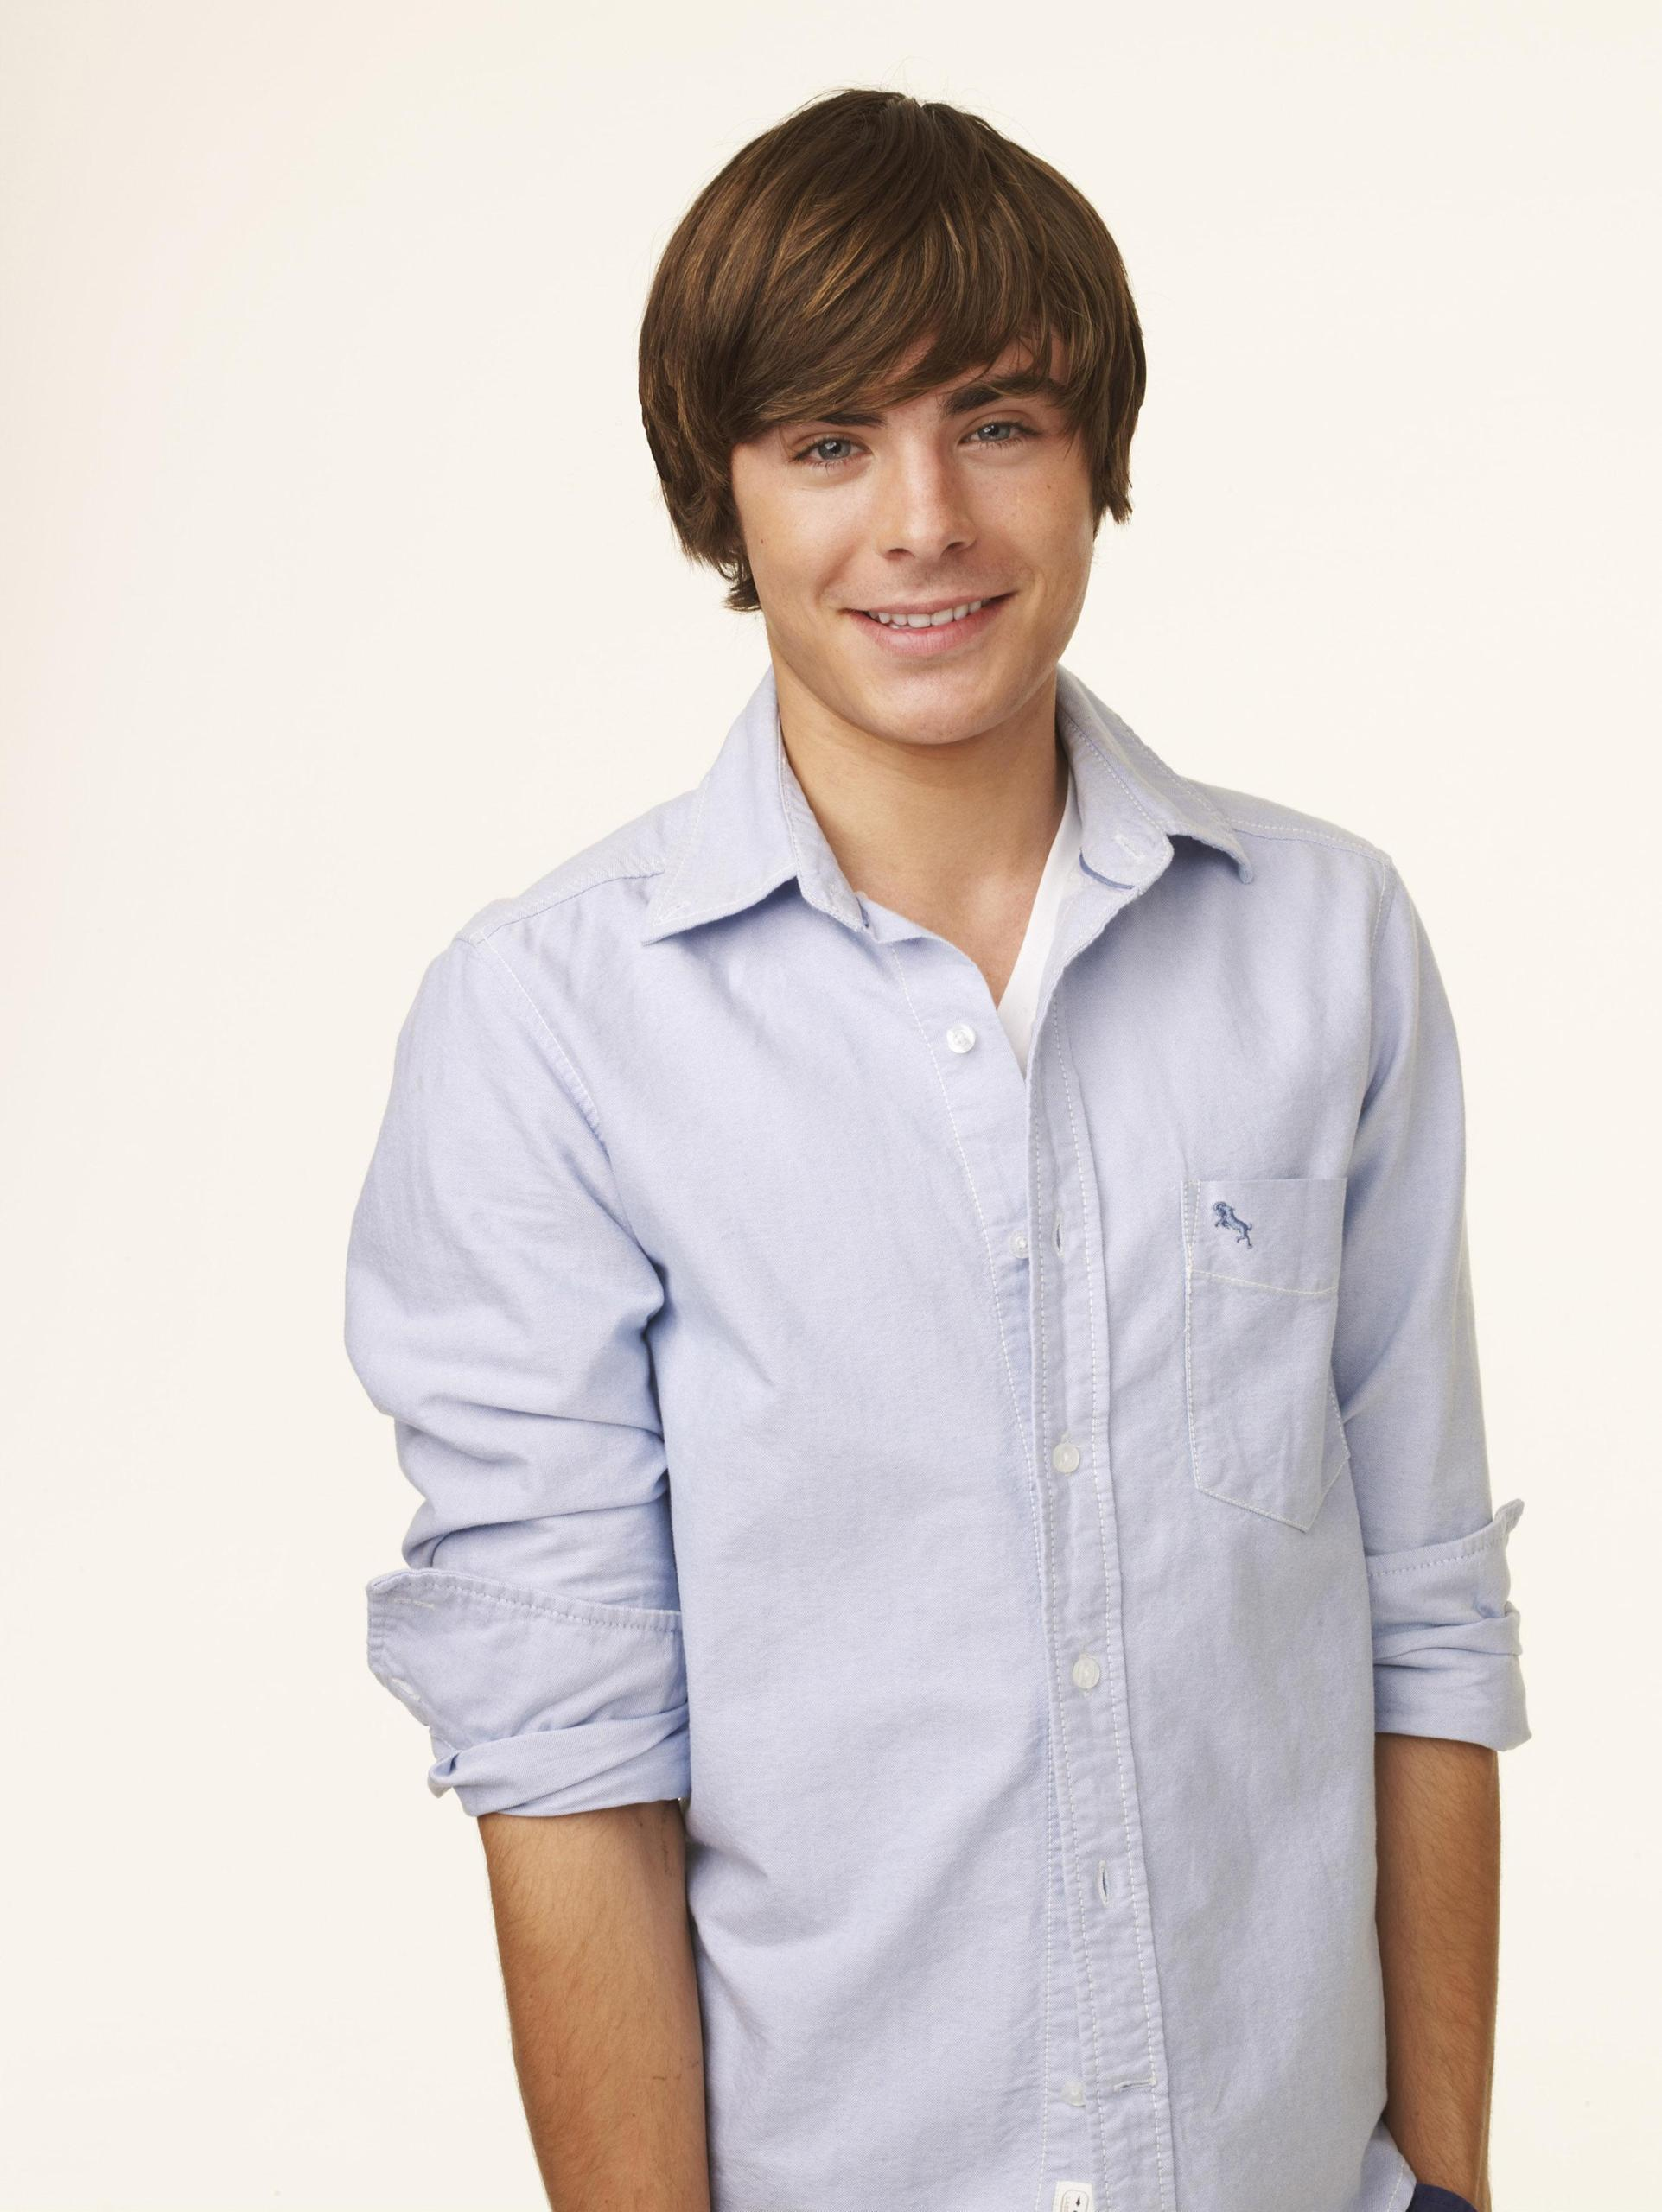 - zac-efron-wallpaper-high-school-musical-troy